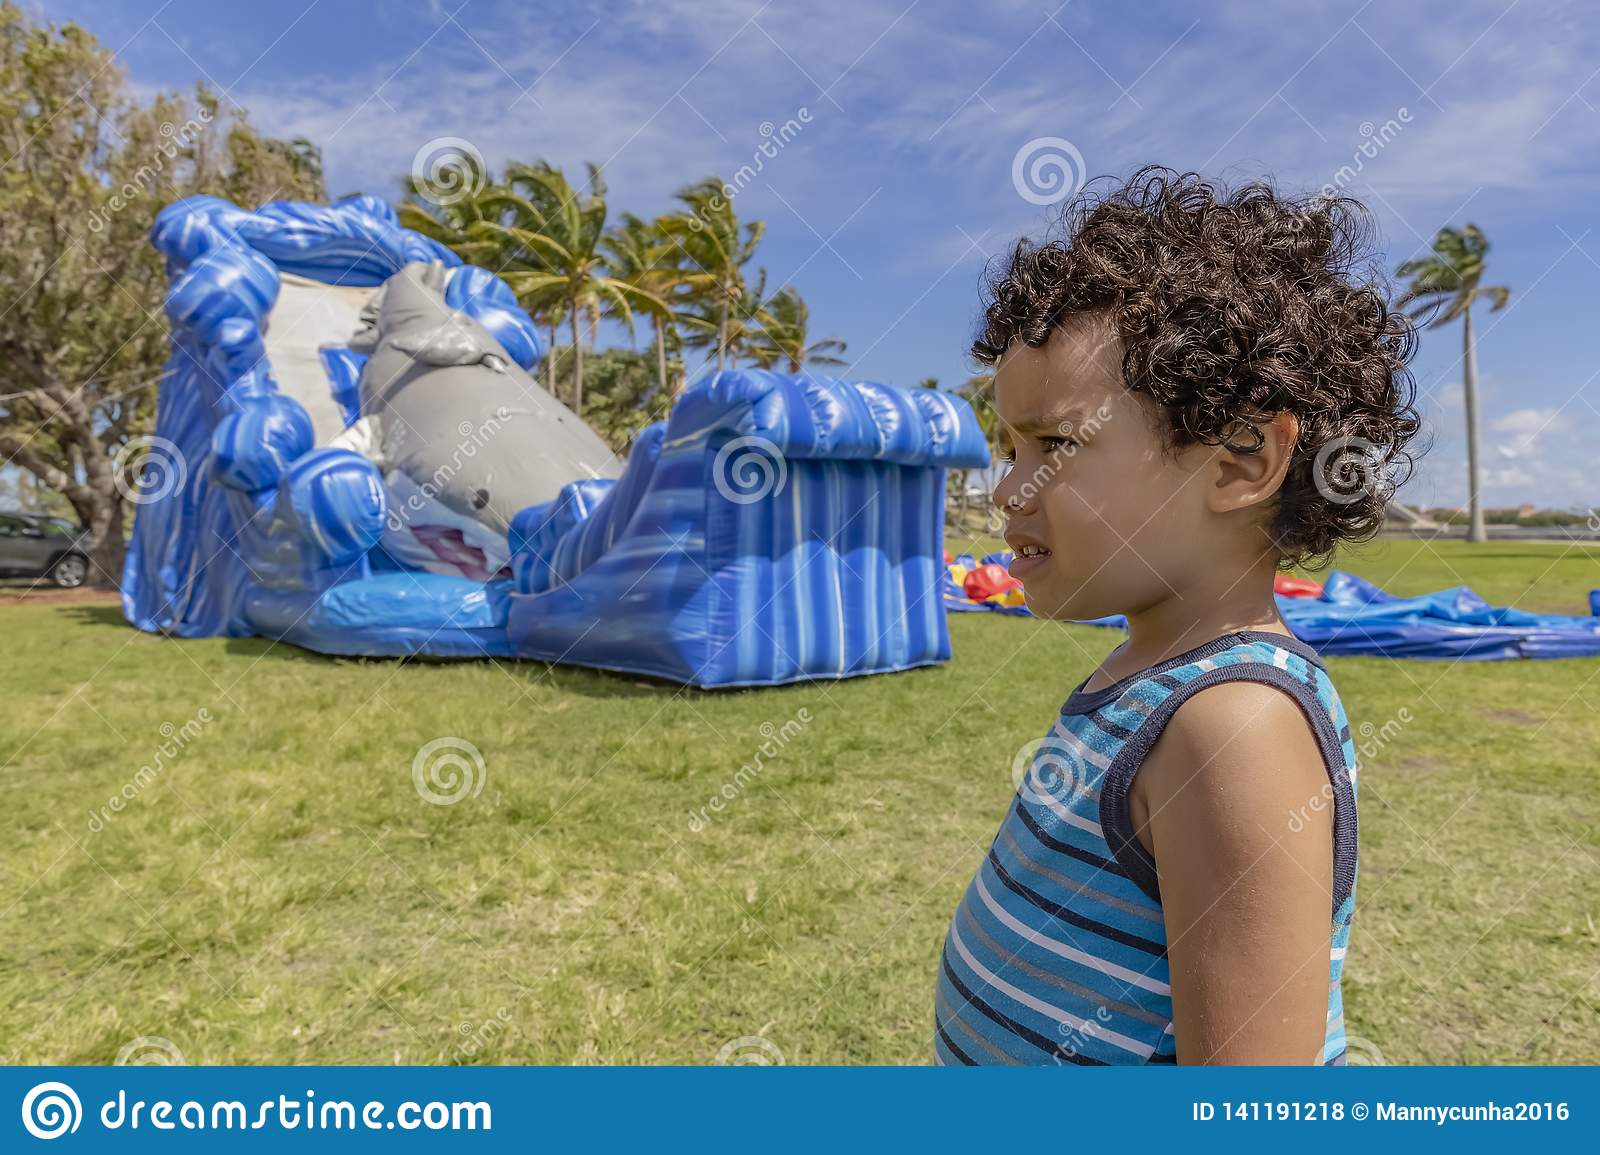 A profiled toddler stands very still with a confused look while the bounce house inflates